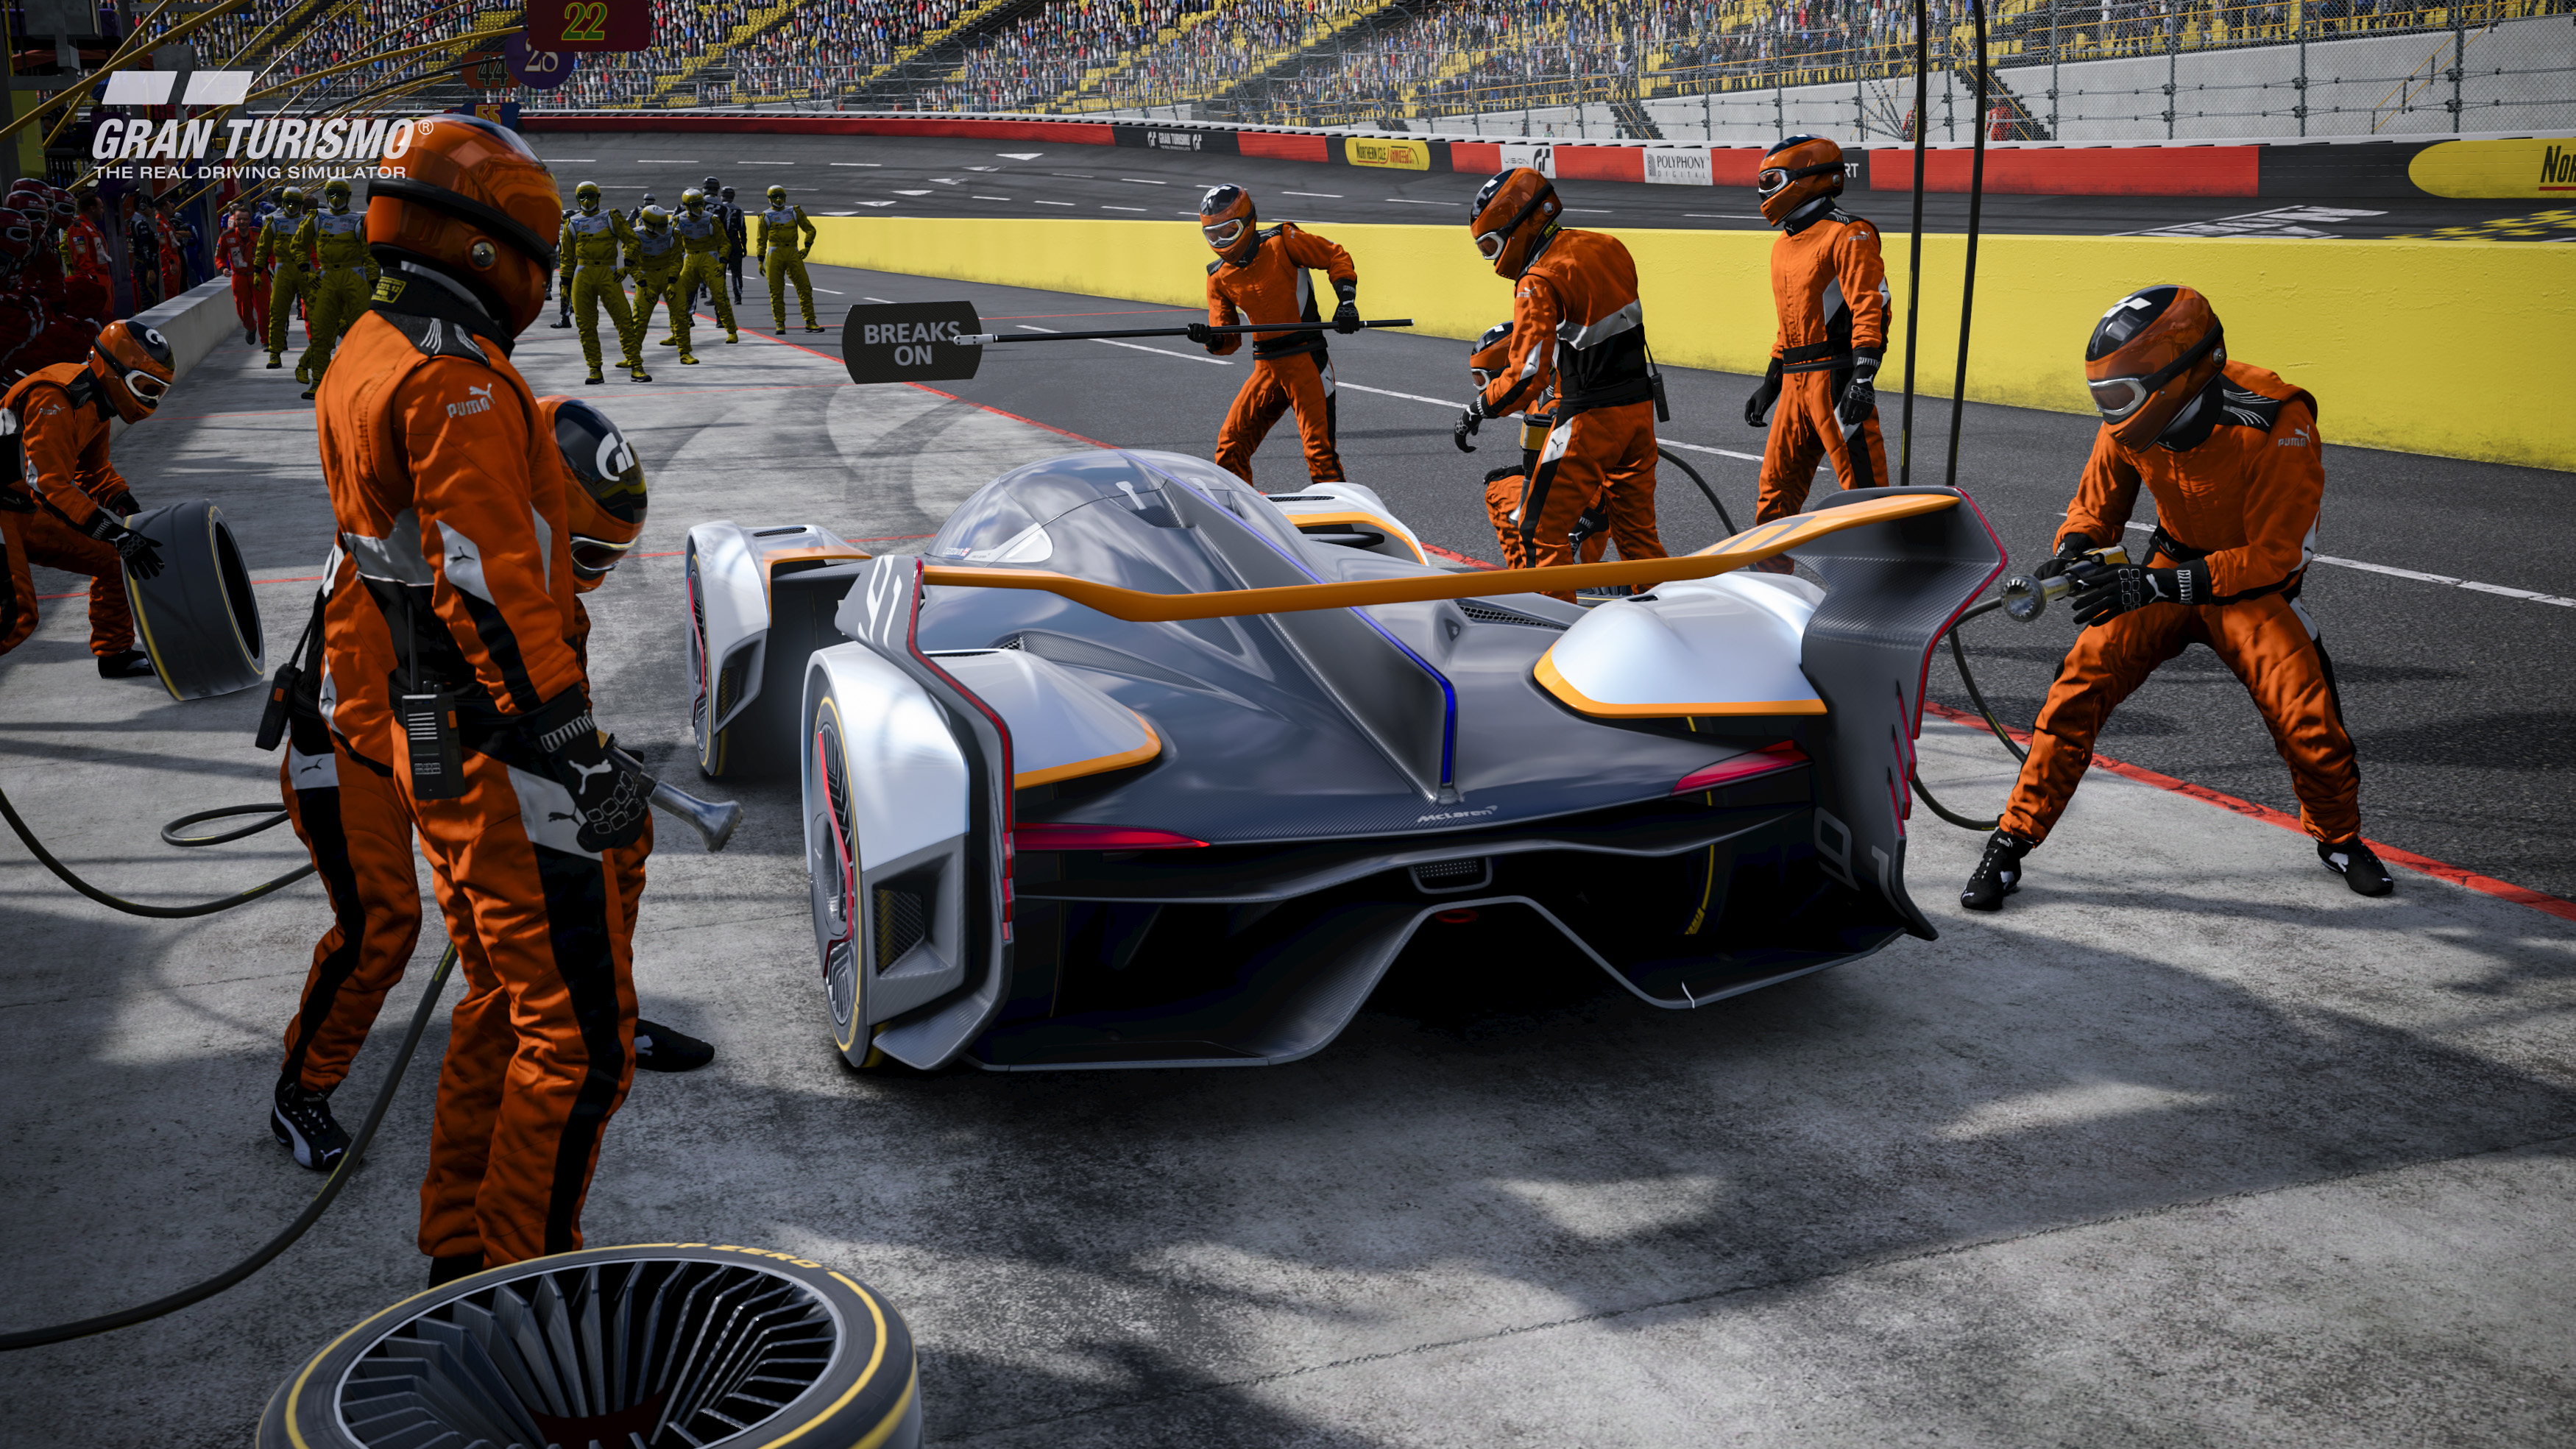 Bmw M Wallpaper Iphone X Mclaren Ultimate Vision Gt For Ps4 Gran Turismo Sport 7